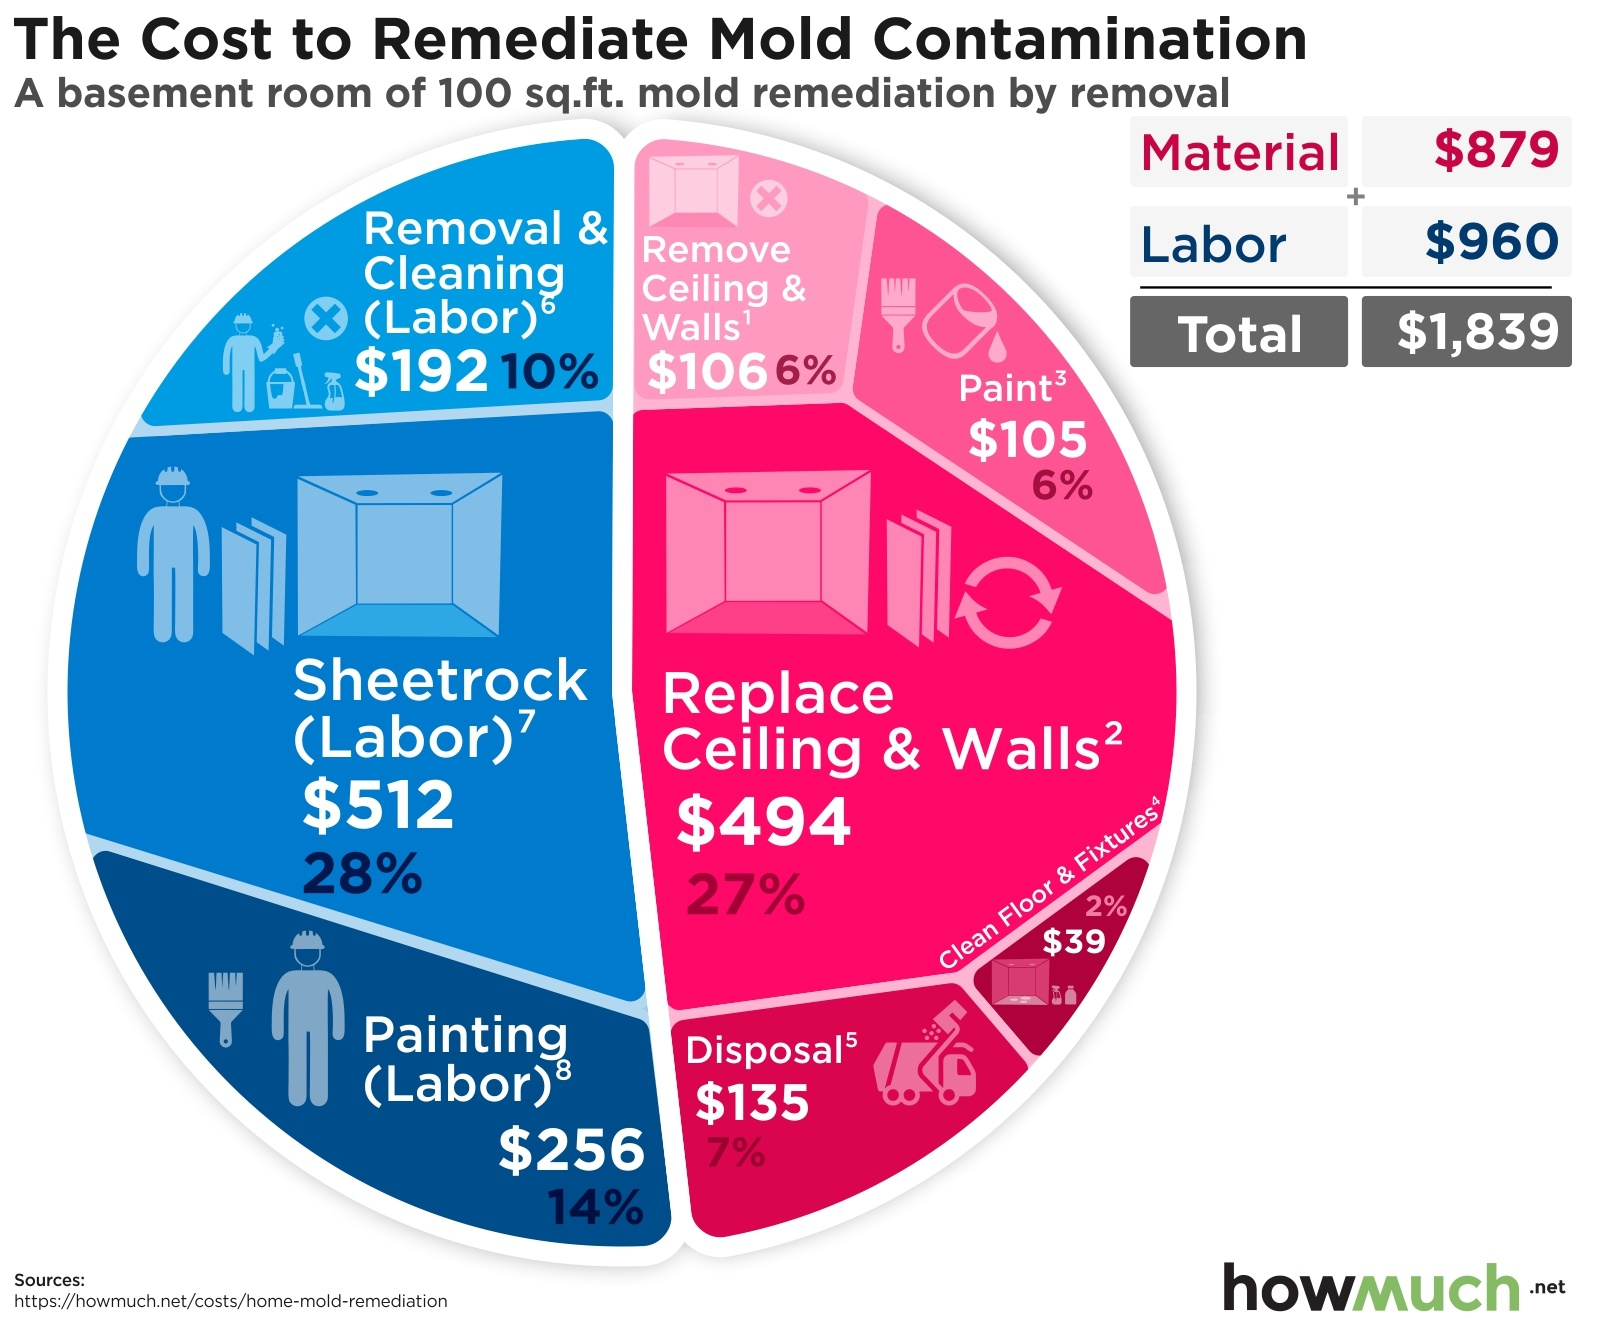 The Cost to Remediate Mold Contamination